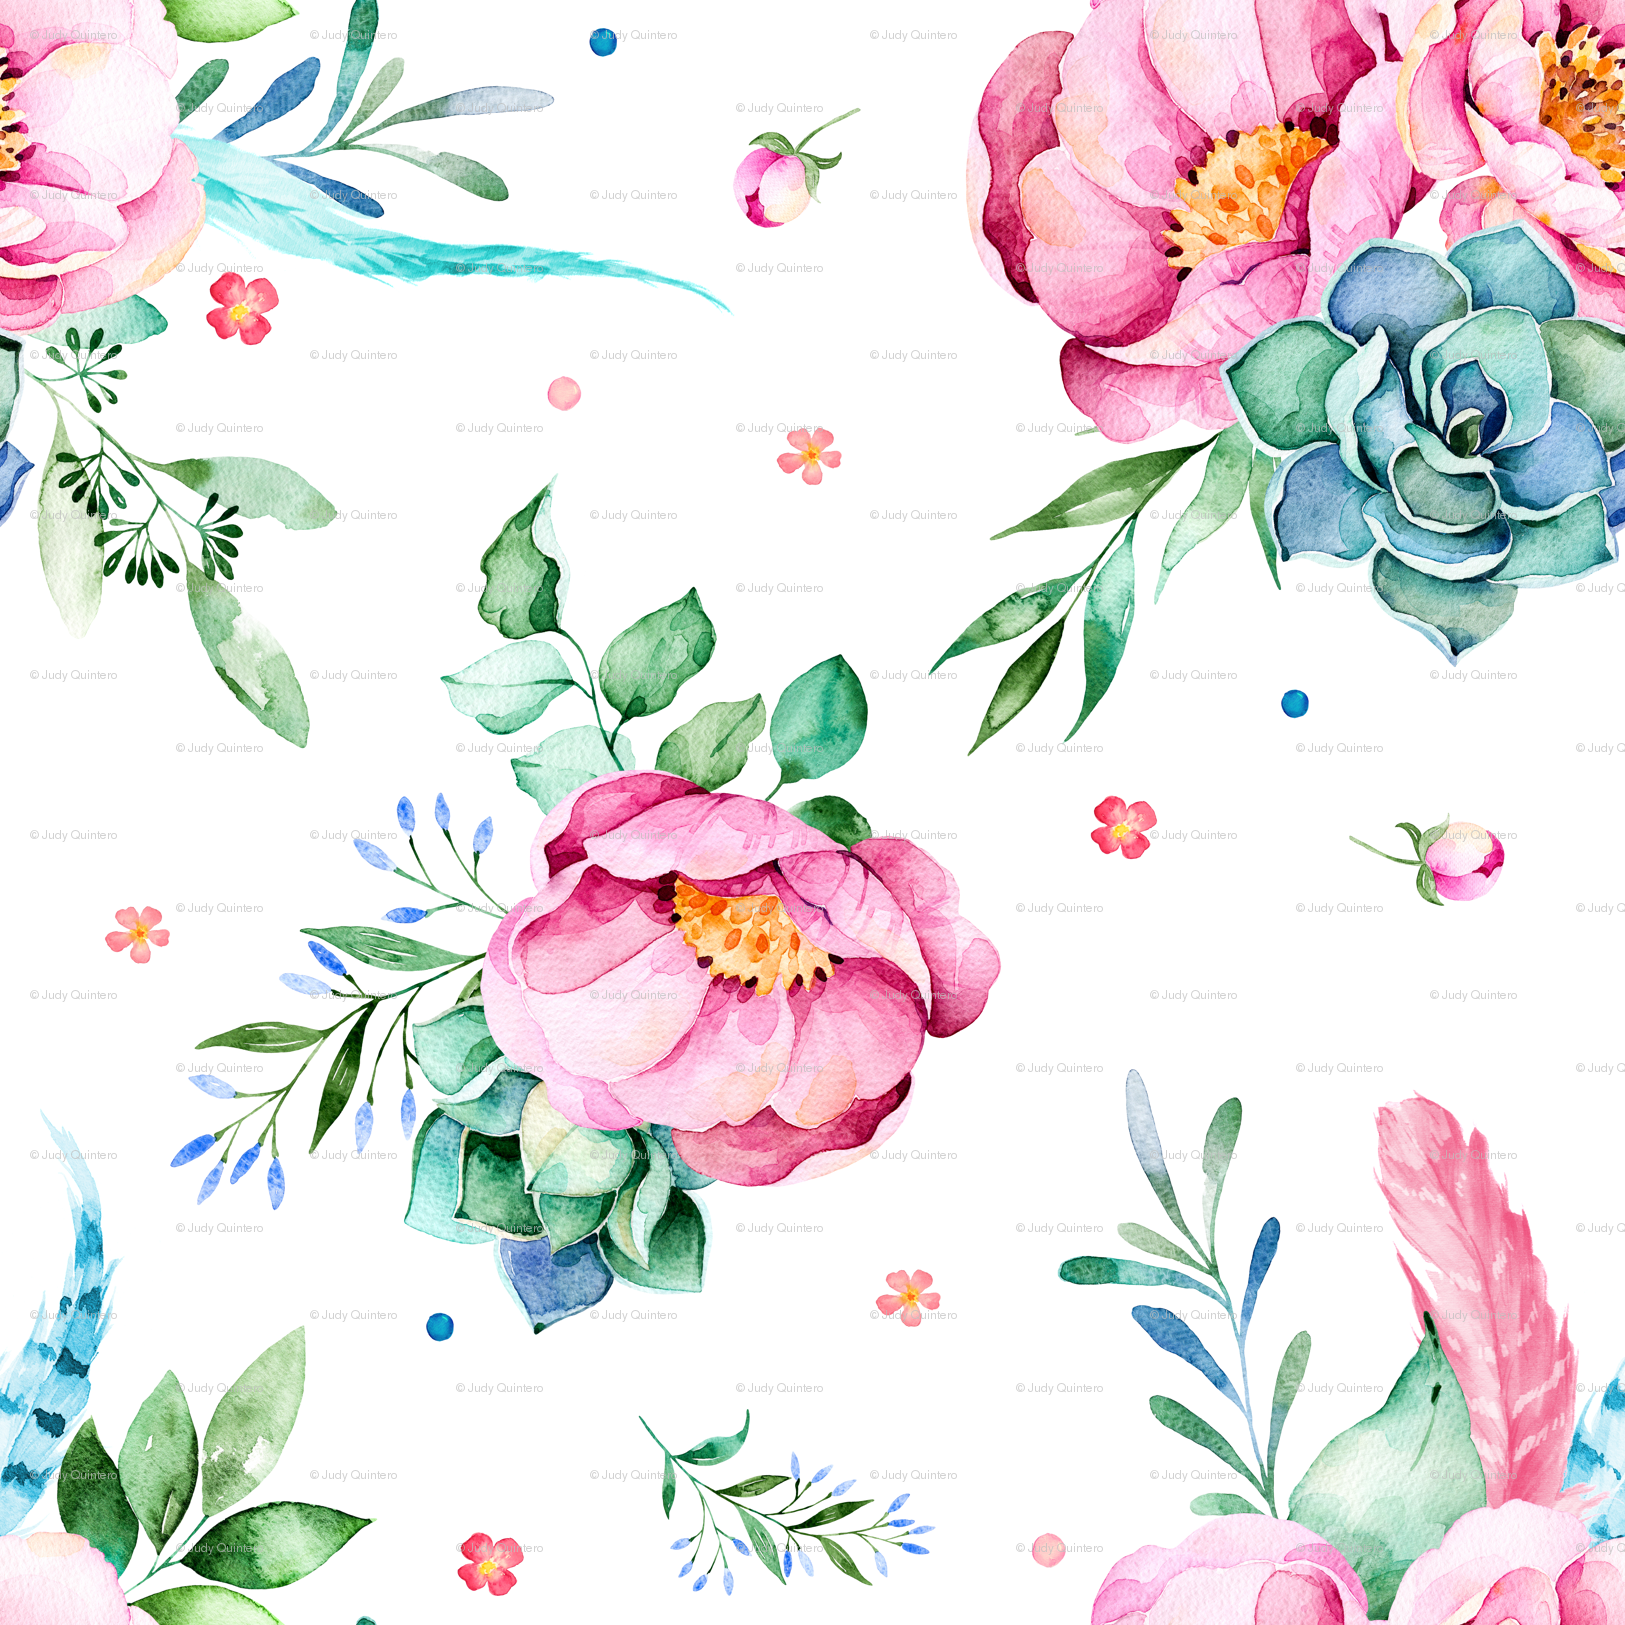 8 aqua pink floral print mix match fabric shopcabin 8 aqua pink floral print mix match fabric shopcabin spoonflower mightylinksfo